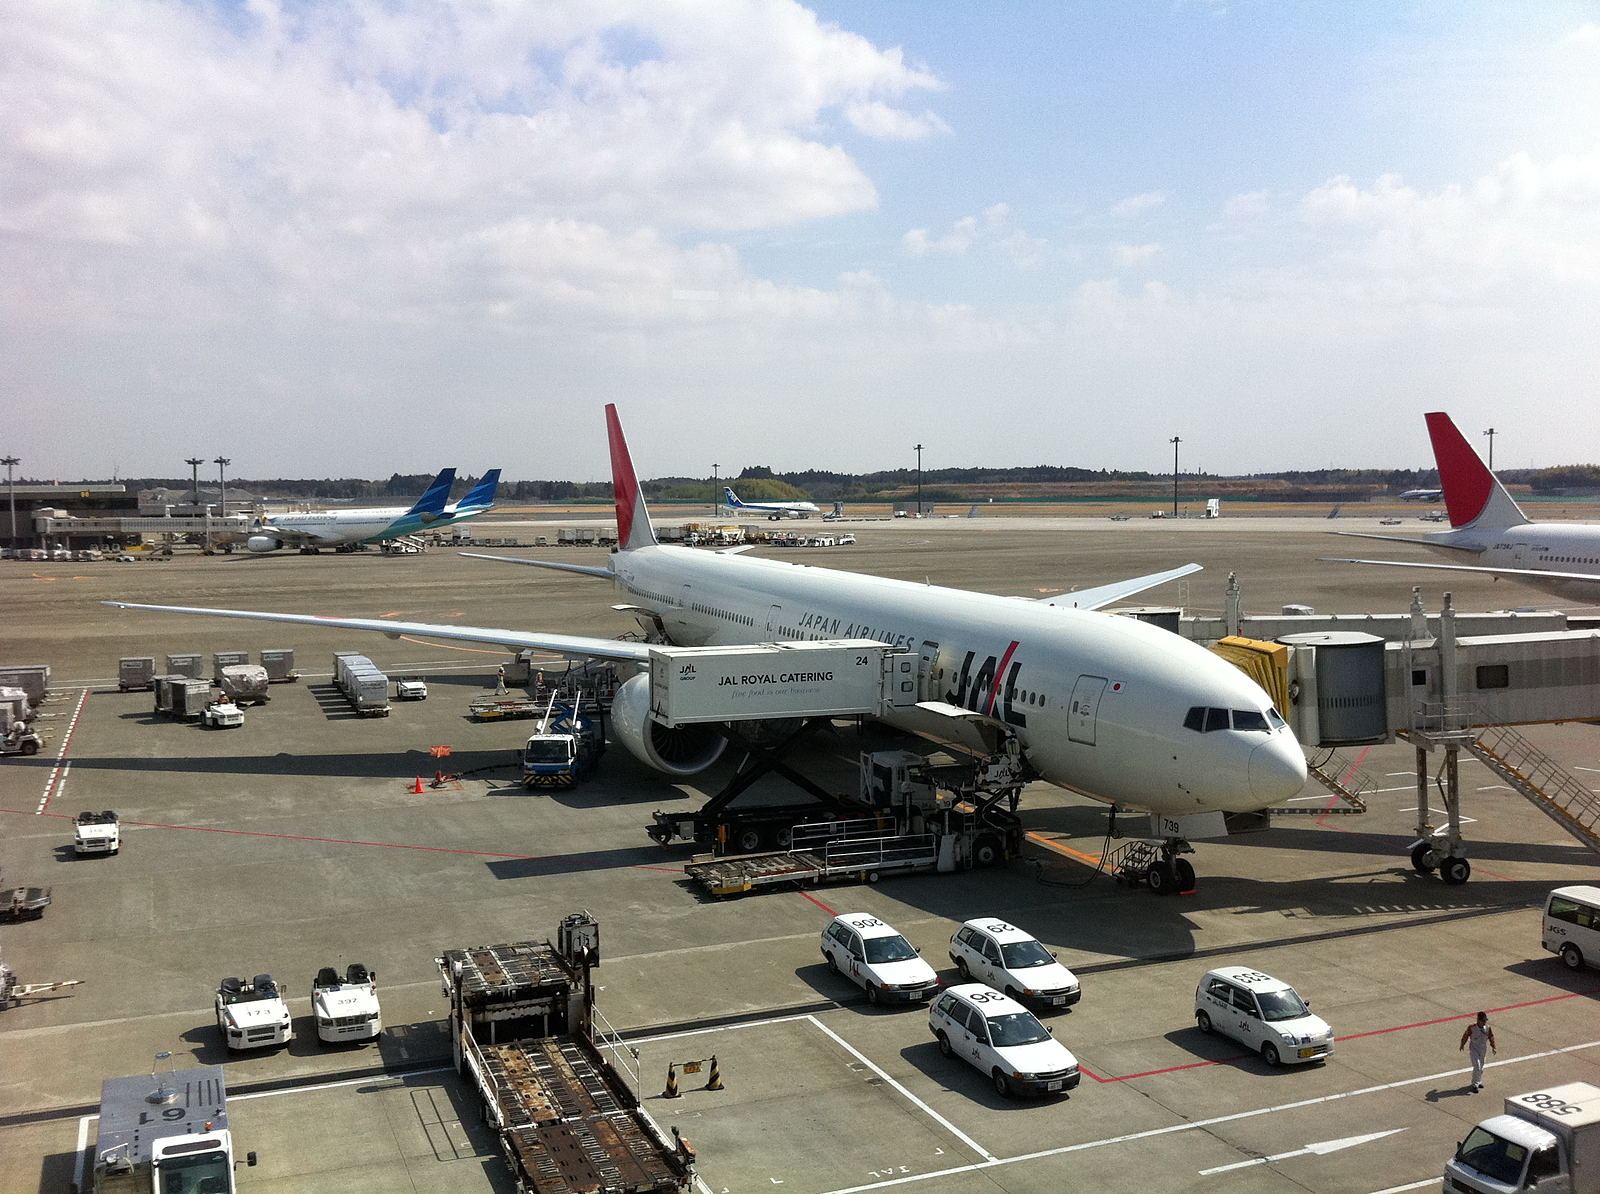 004jal010